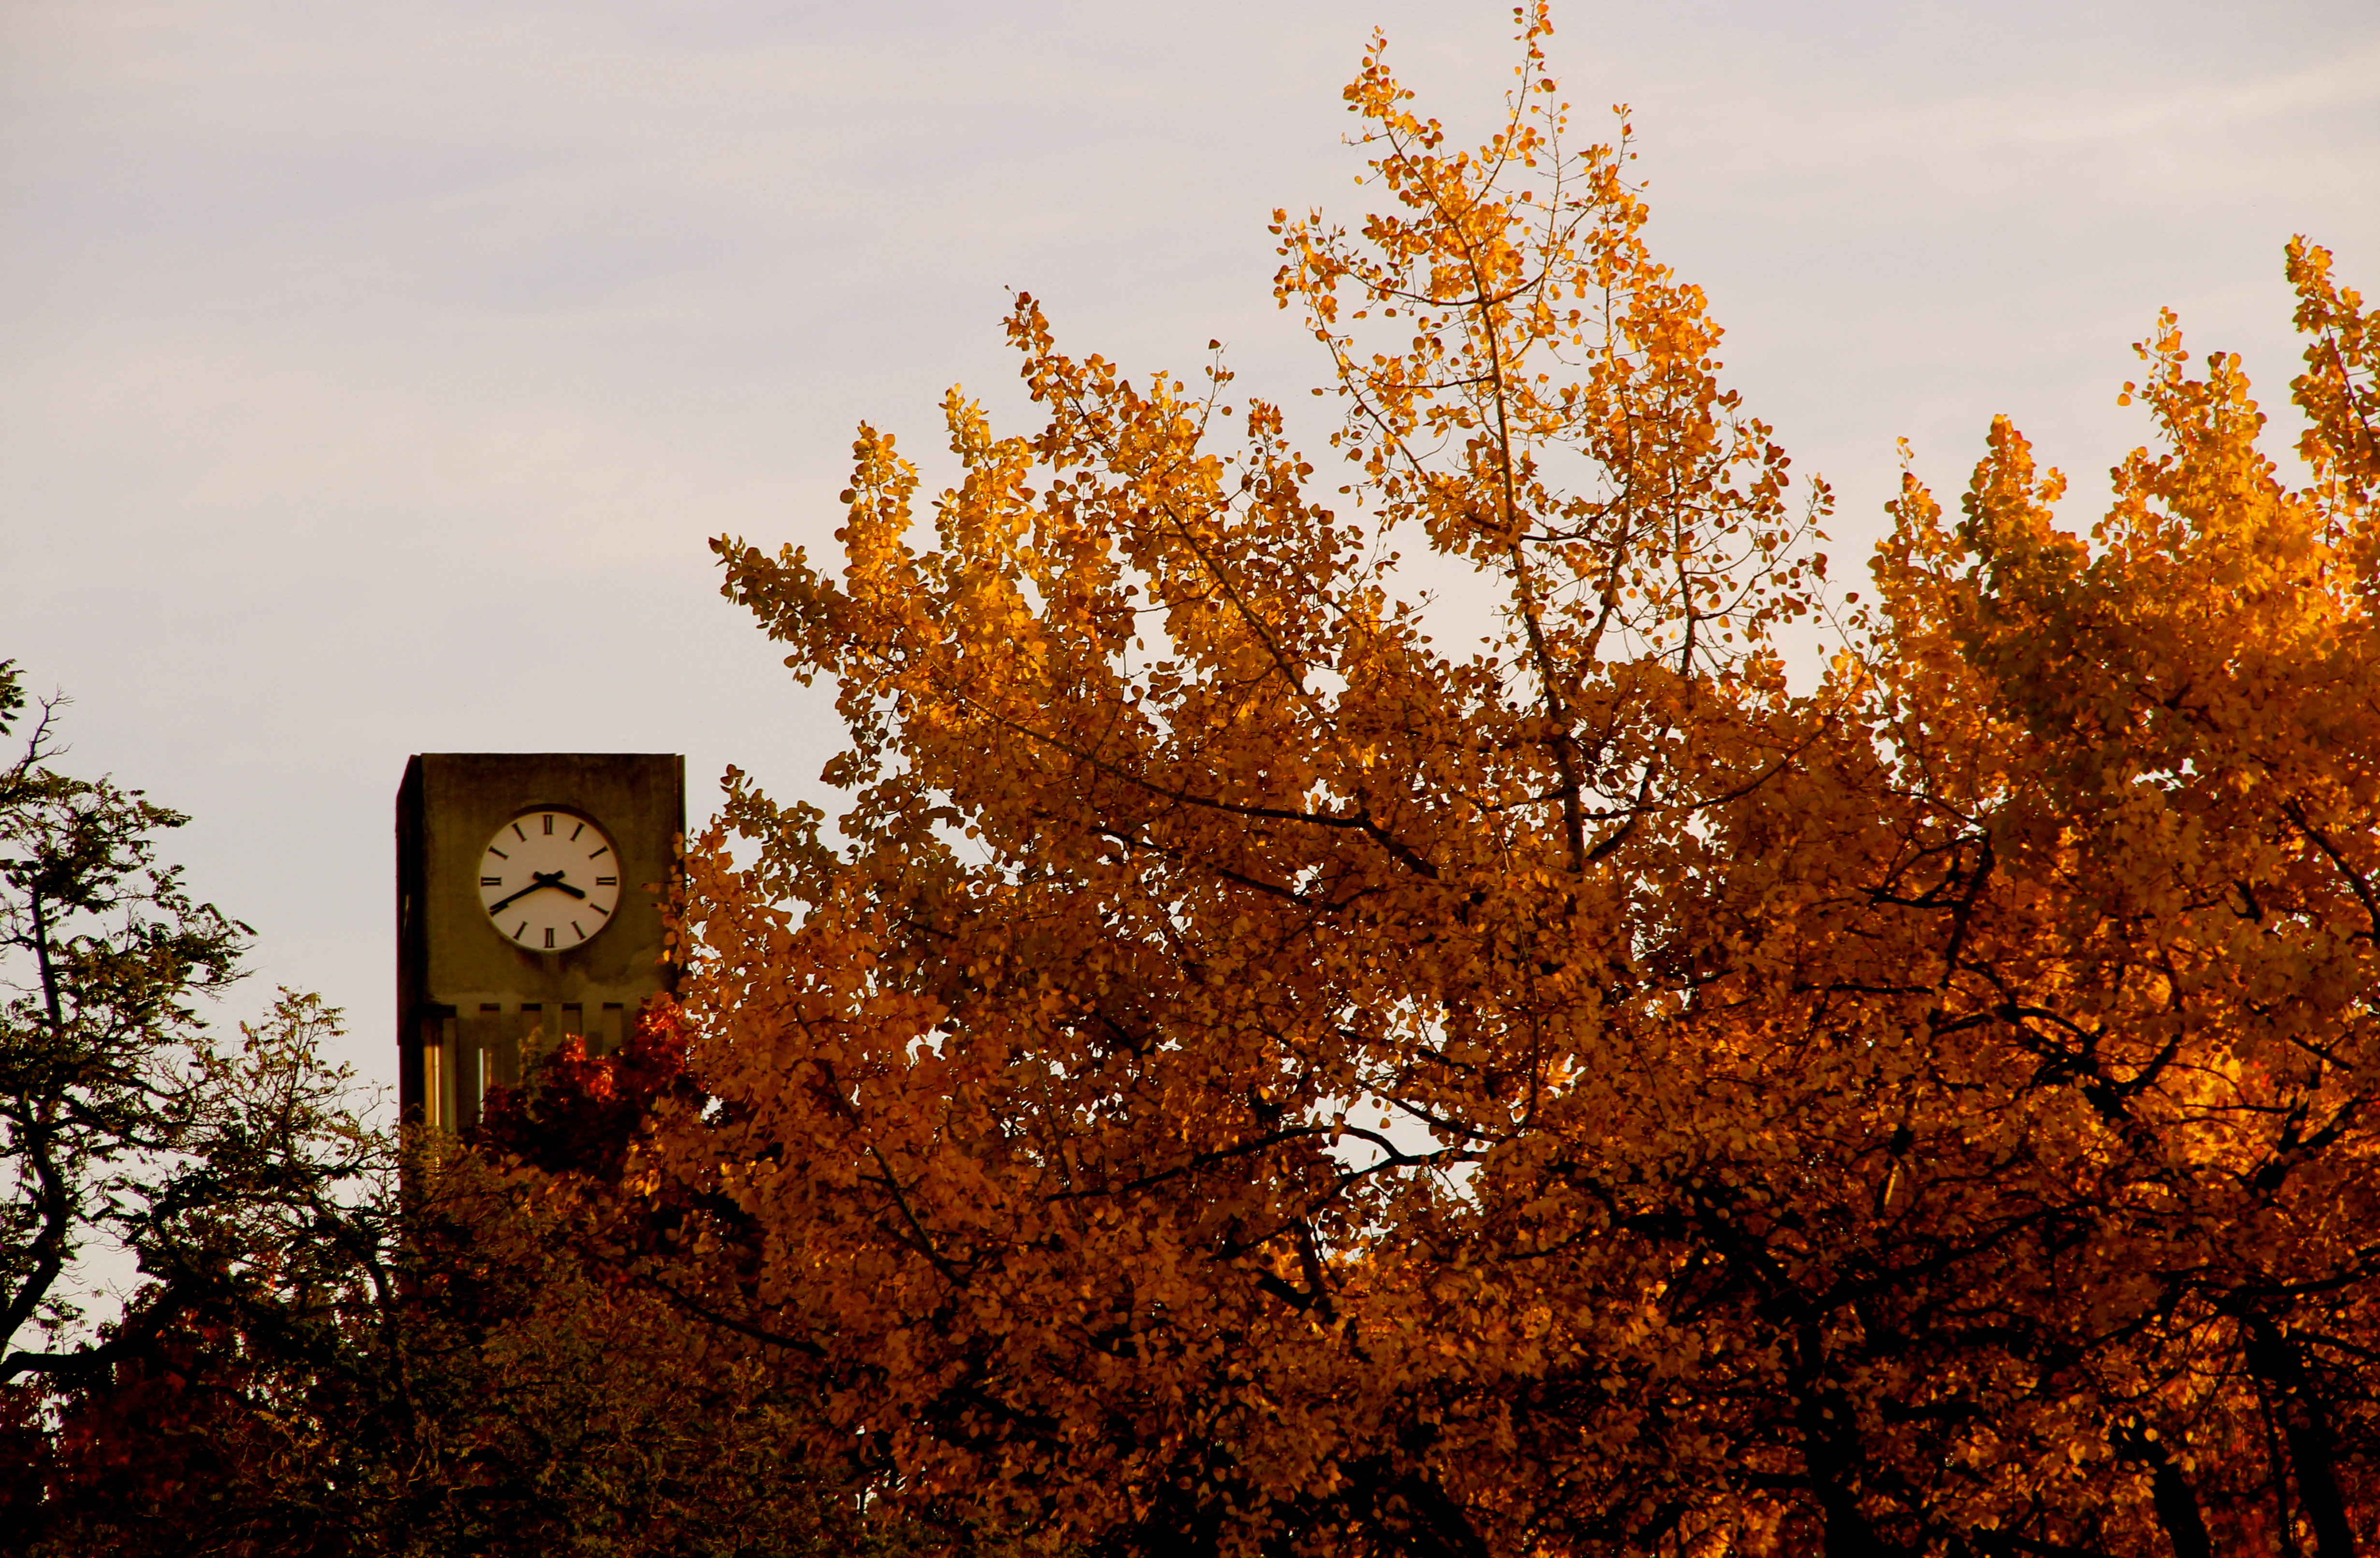 UBC Clock Tower in the Fall